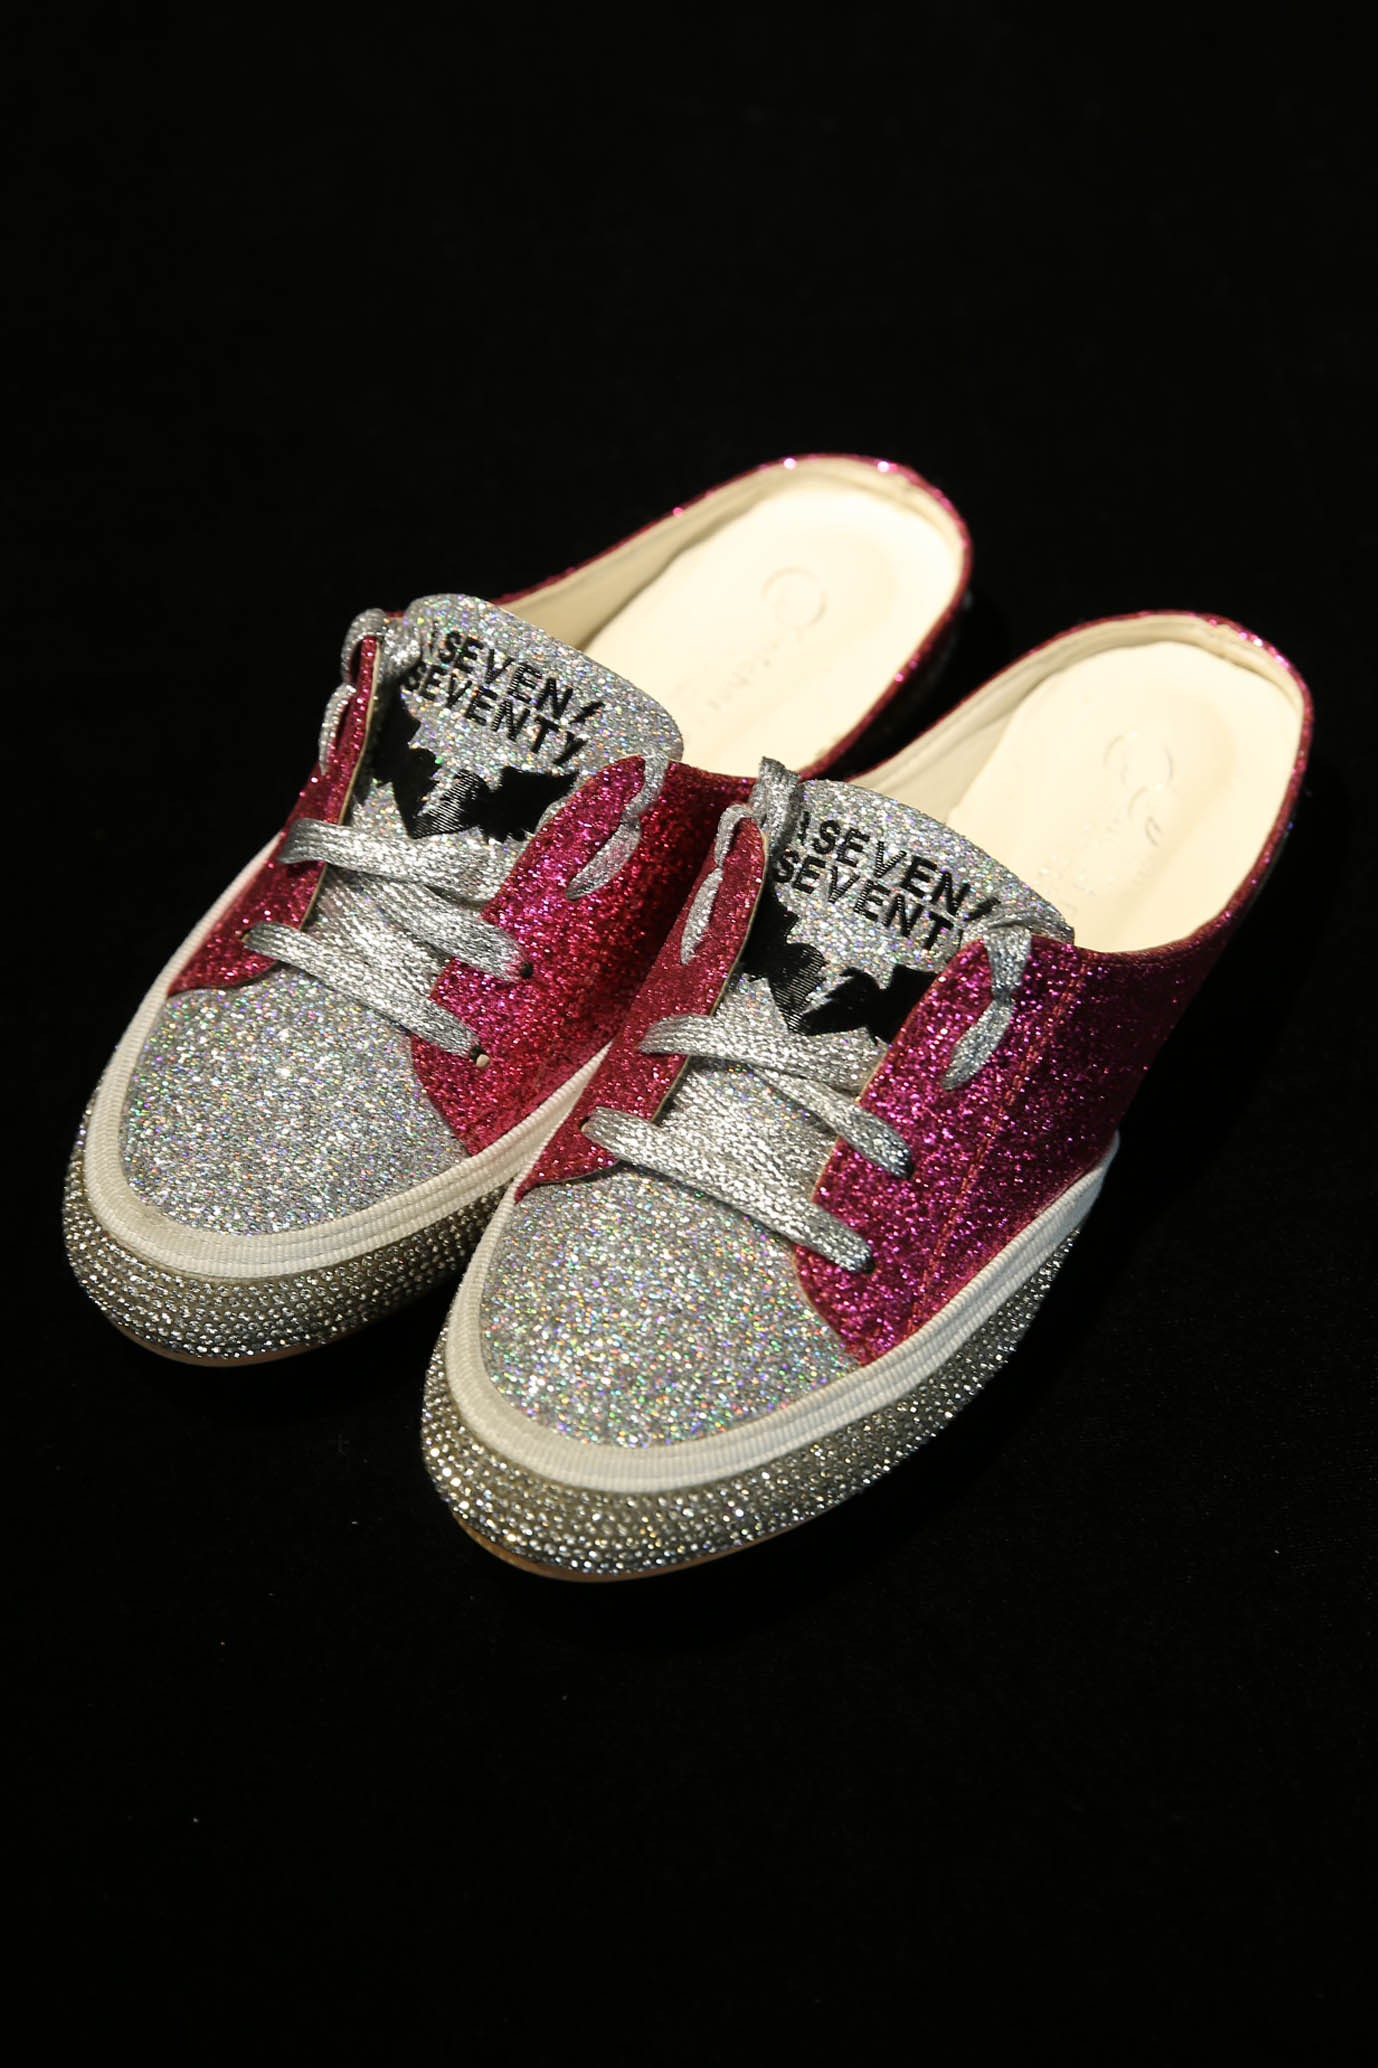 6e2568d8a79a Opened Pink and Silver Sneakers Flats SHINY - Shoes On Sale - Shoes